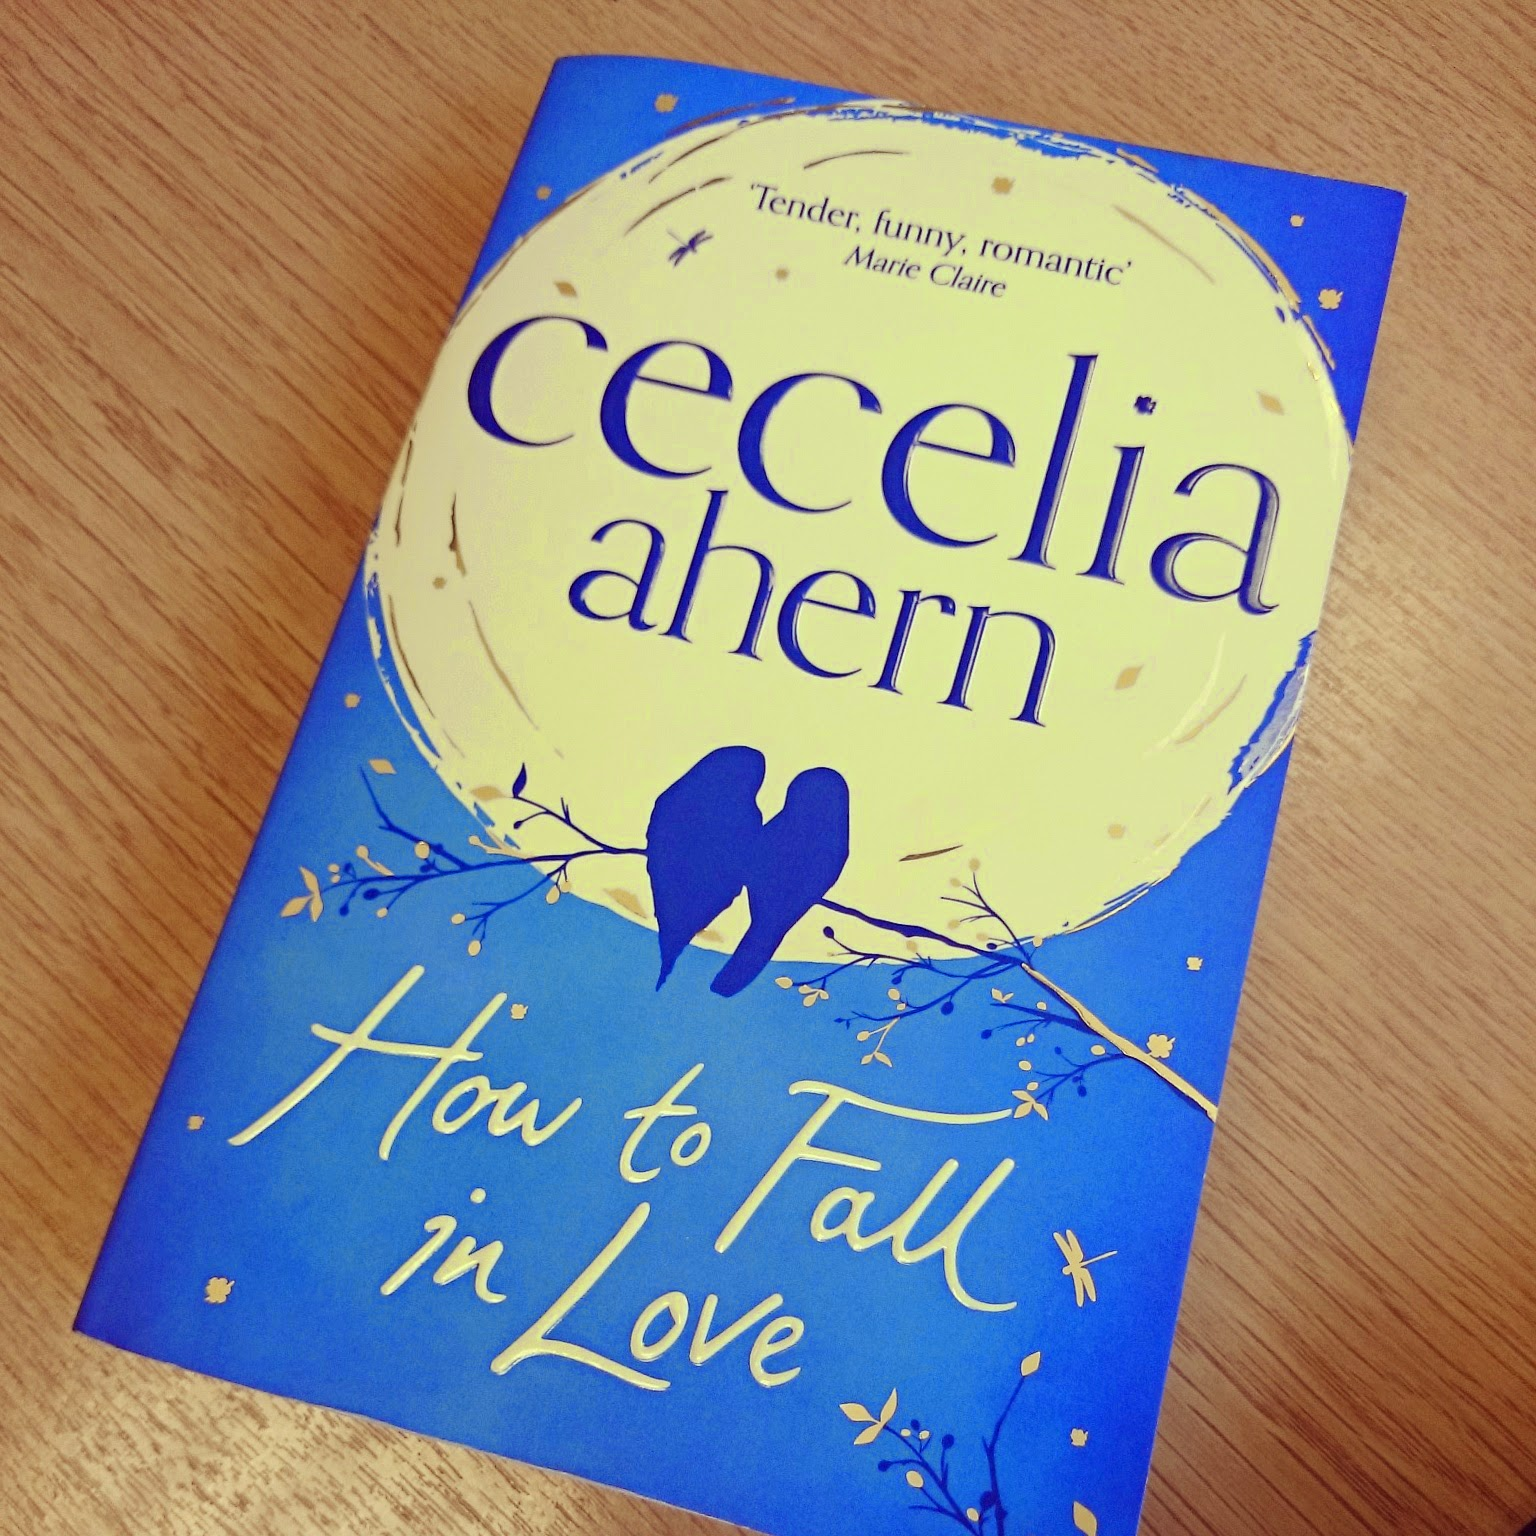 cecelia ahern how to fall in love book review novel romance fiction love story